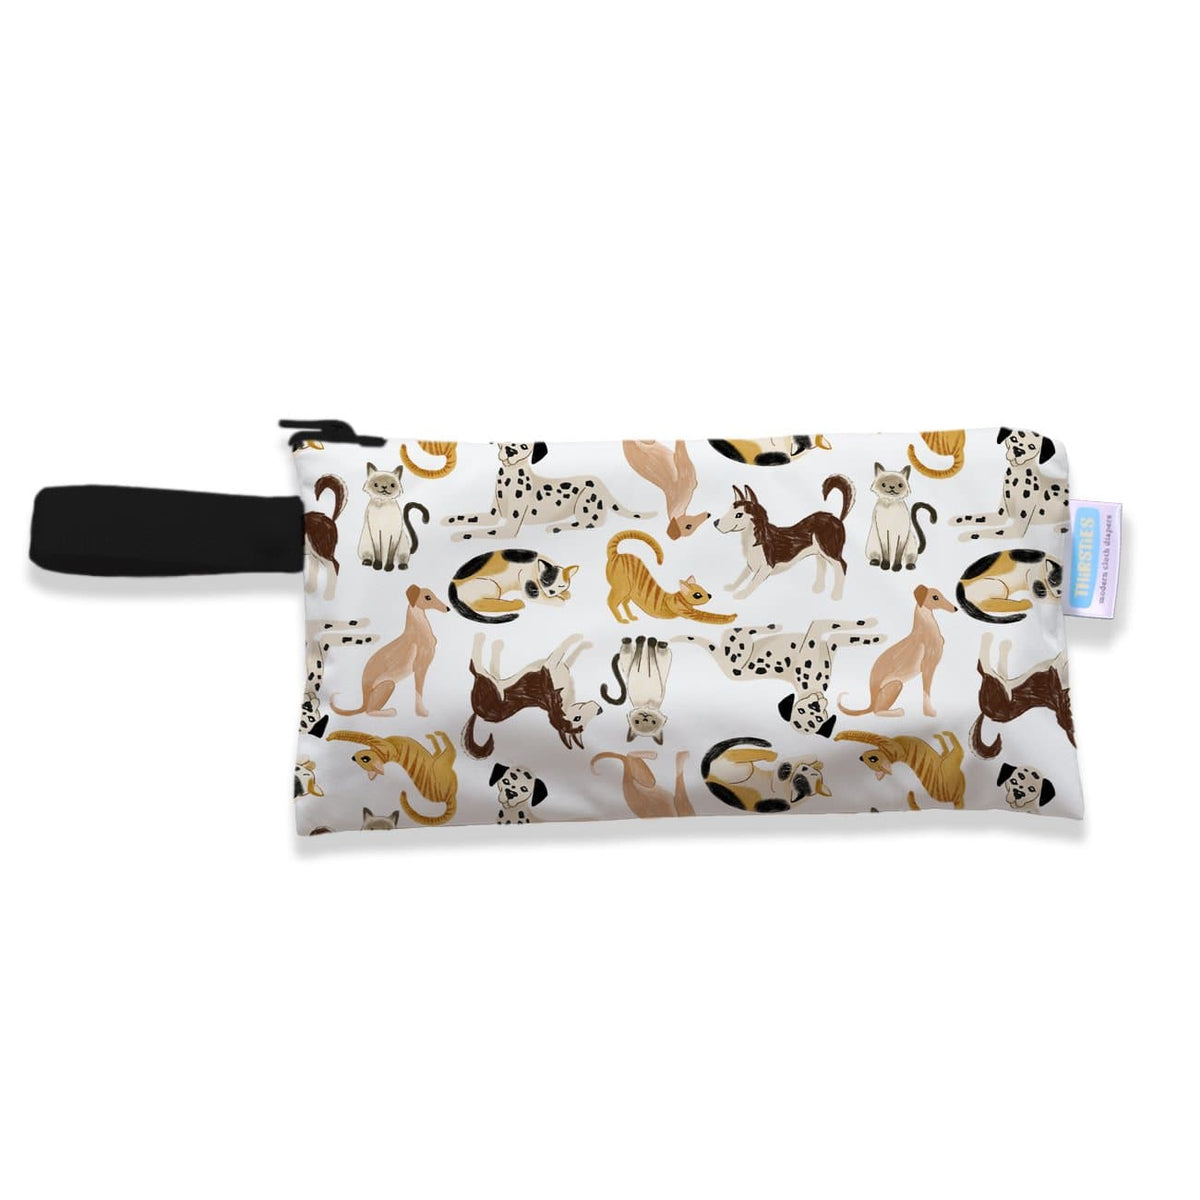 Thirsties Clutch Bag - Pawsitive Pals